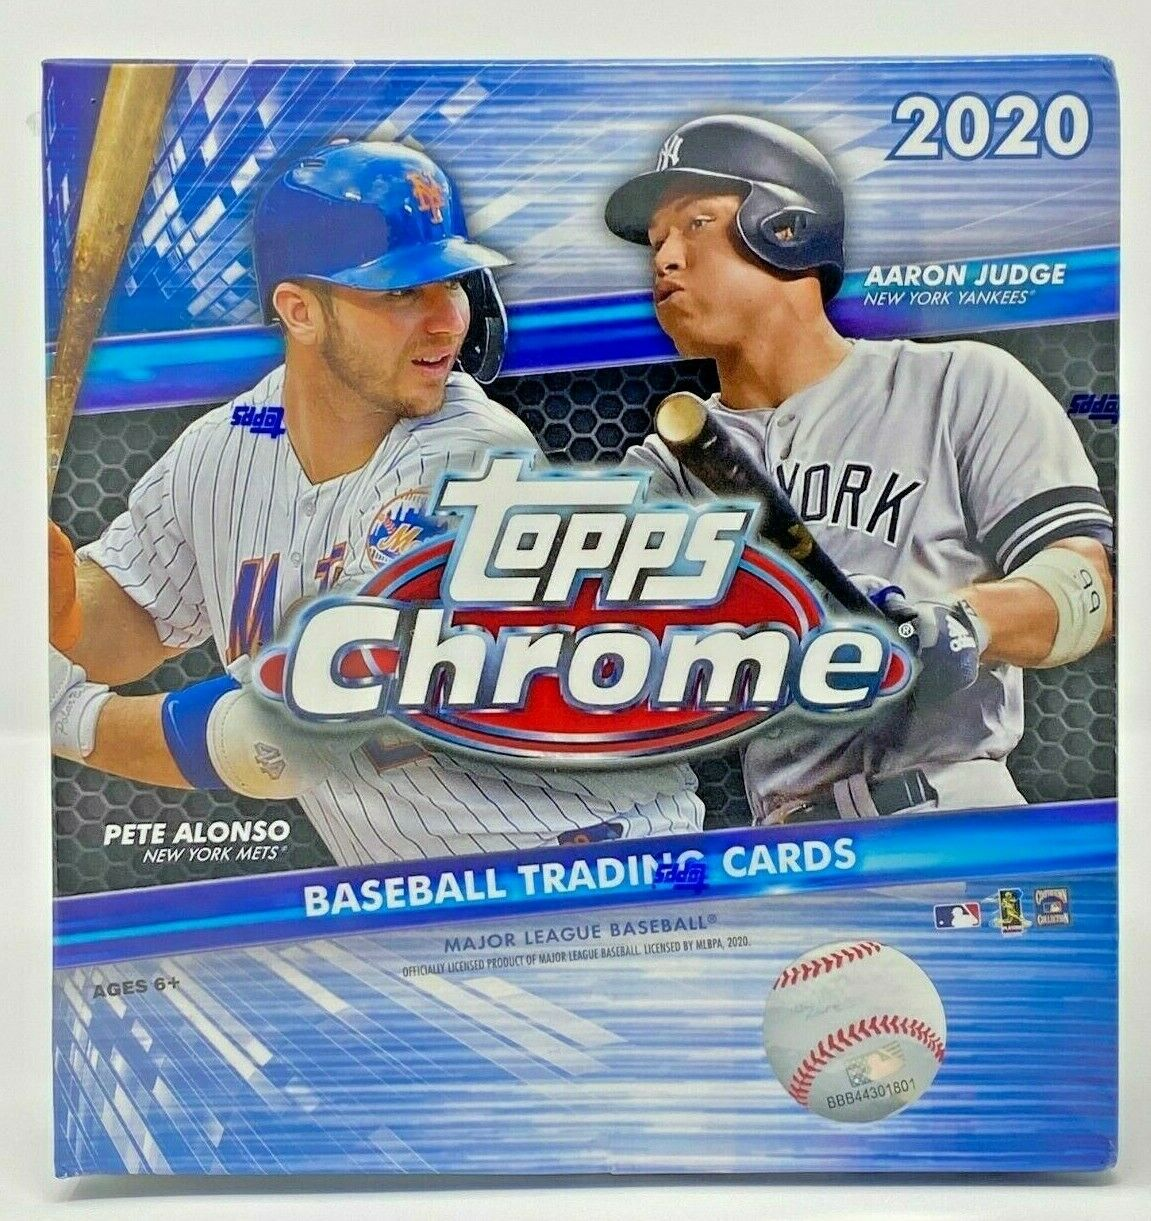 2020 Topps Chrome Baseball Sealed Box - Hobby Mega Blaster Value Cello Packs